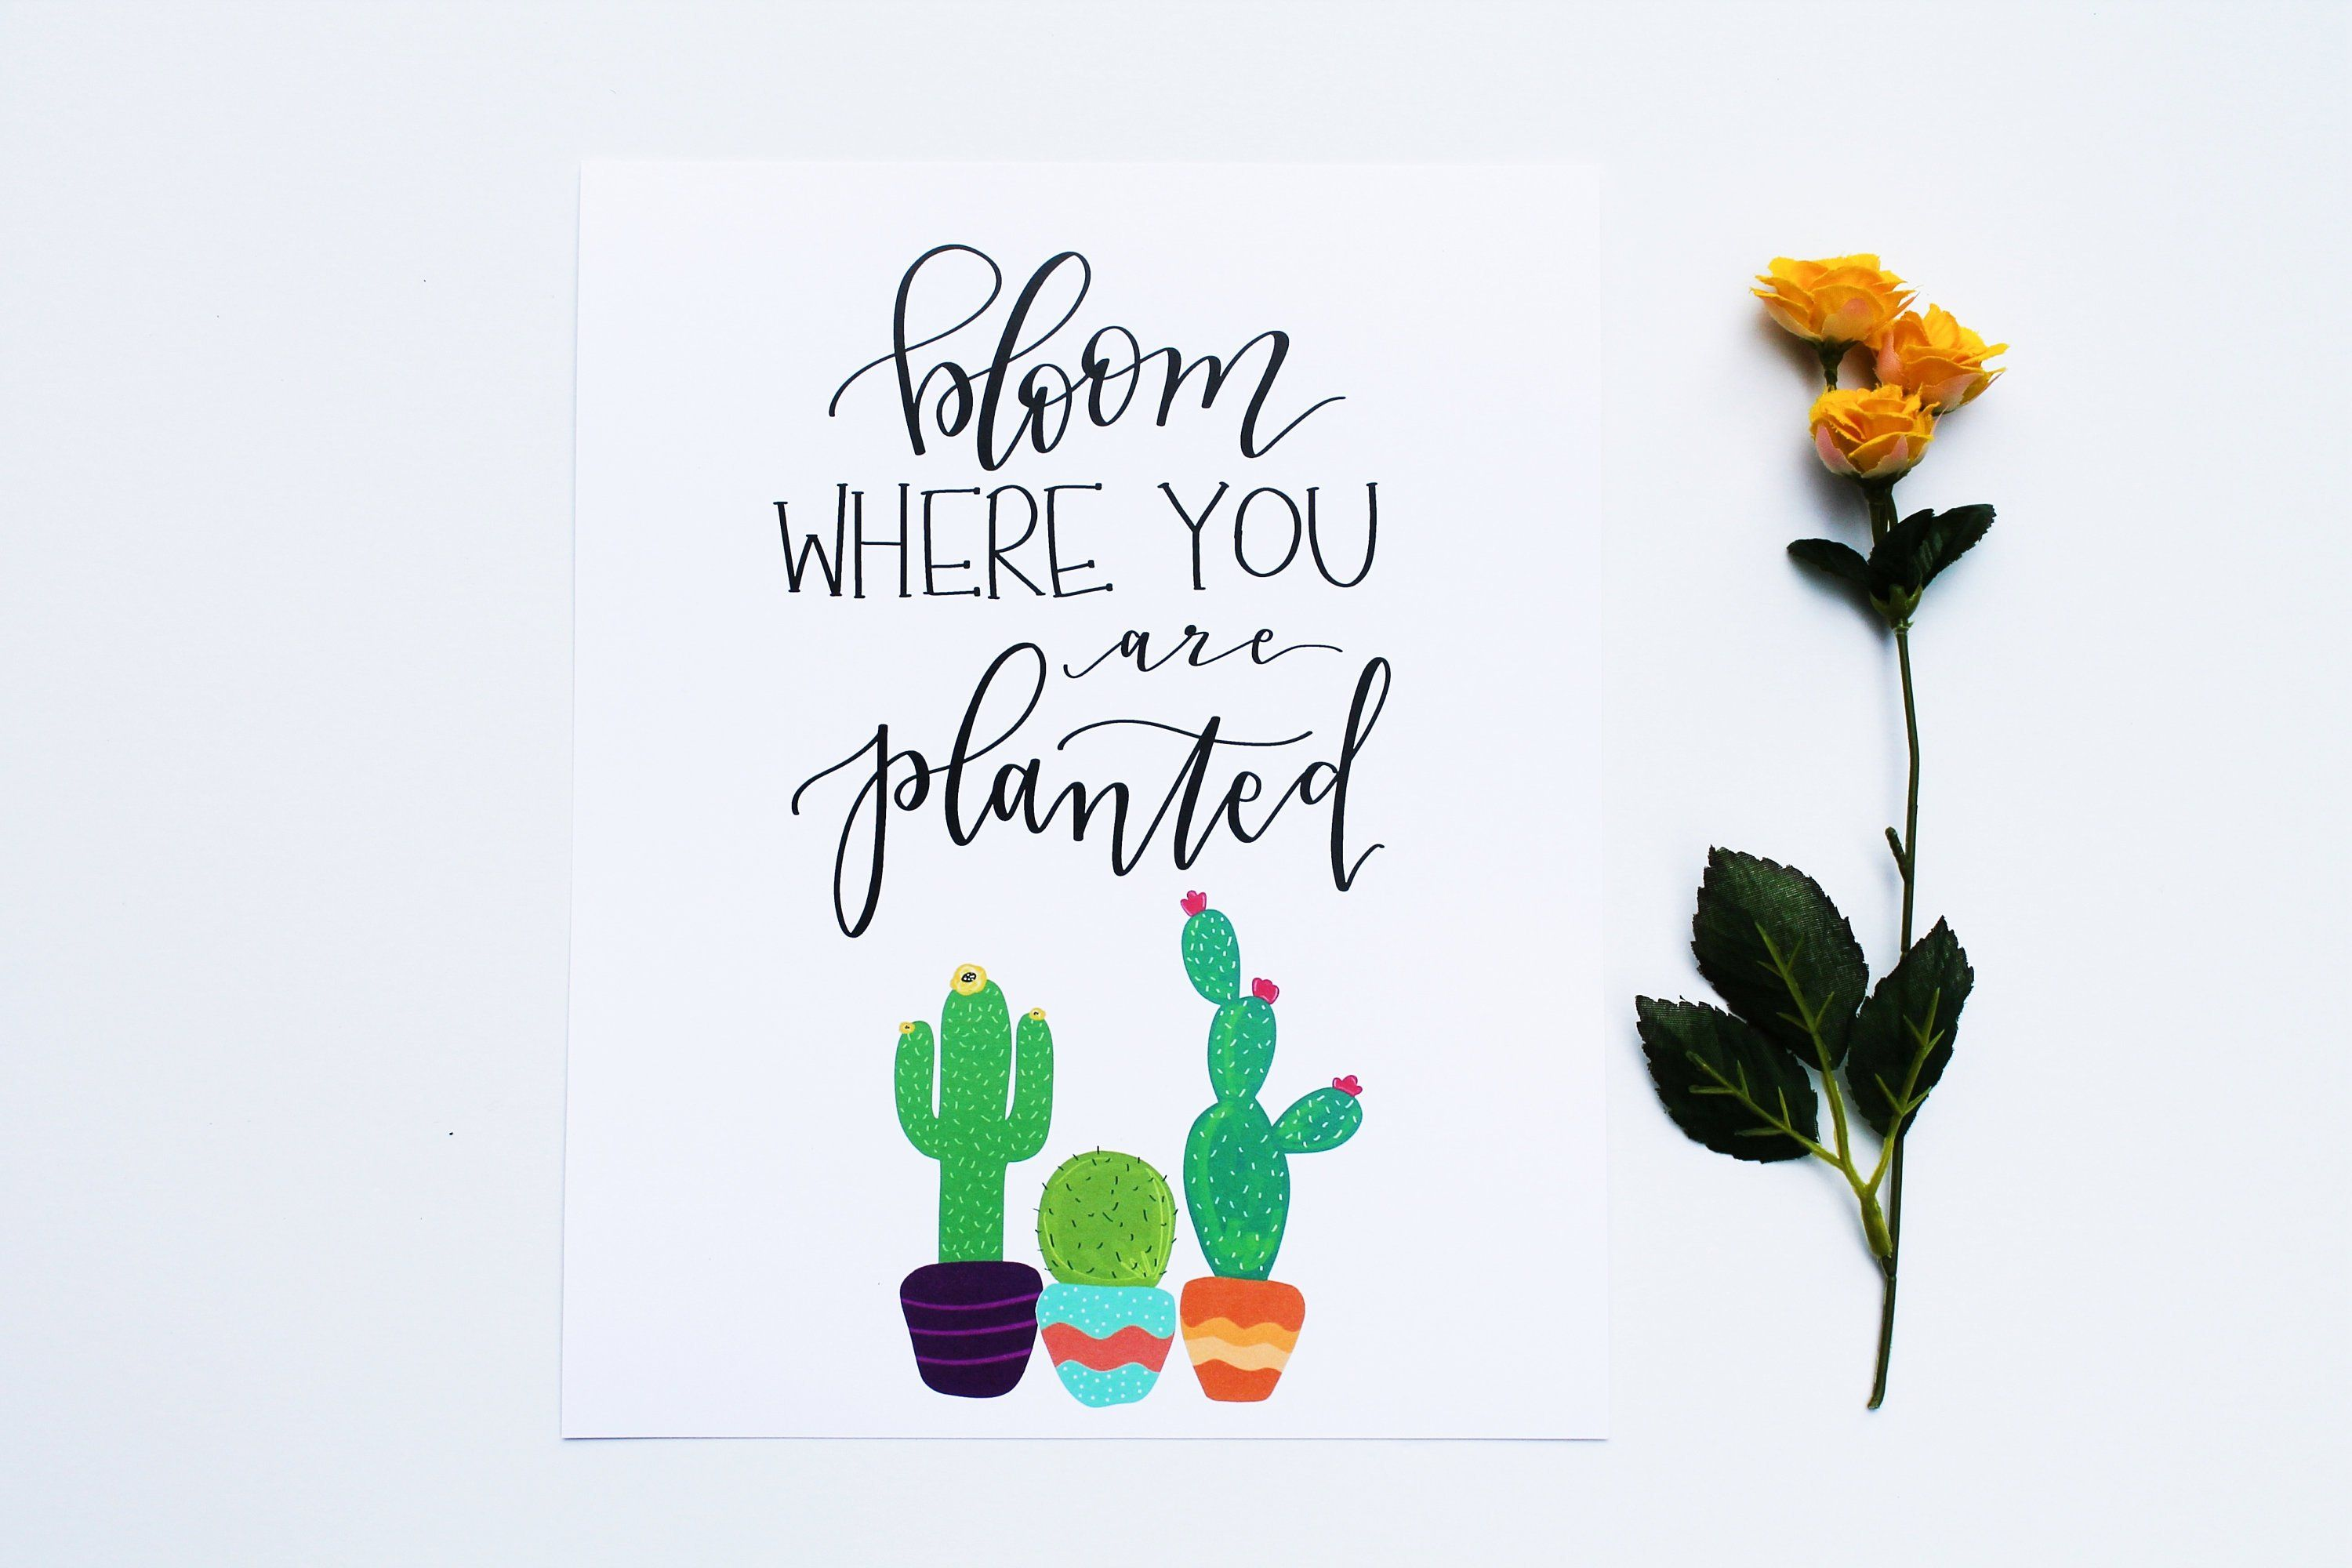 Bloom Where You Are Planted Succulents Cactus Nursery Print Garden Ideas Bloom Where You Are Planted Succulents Nursery Prints